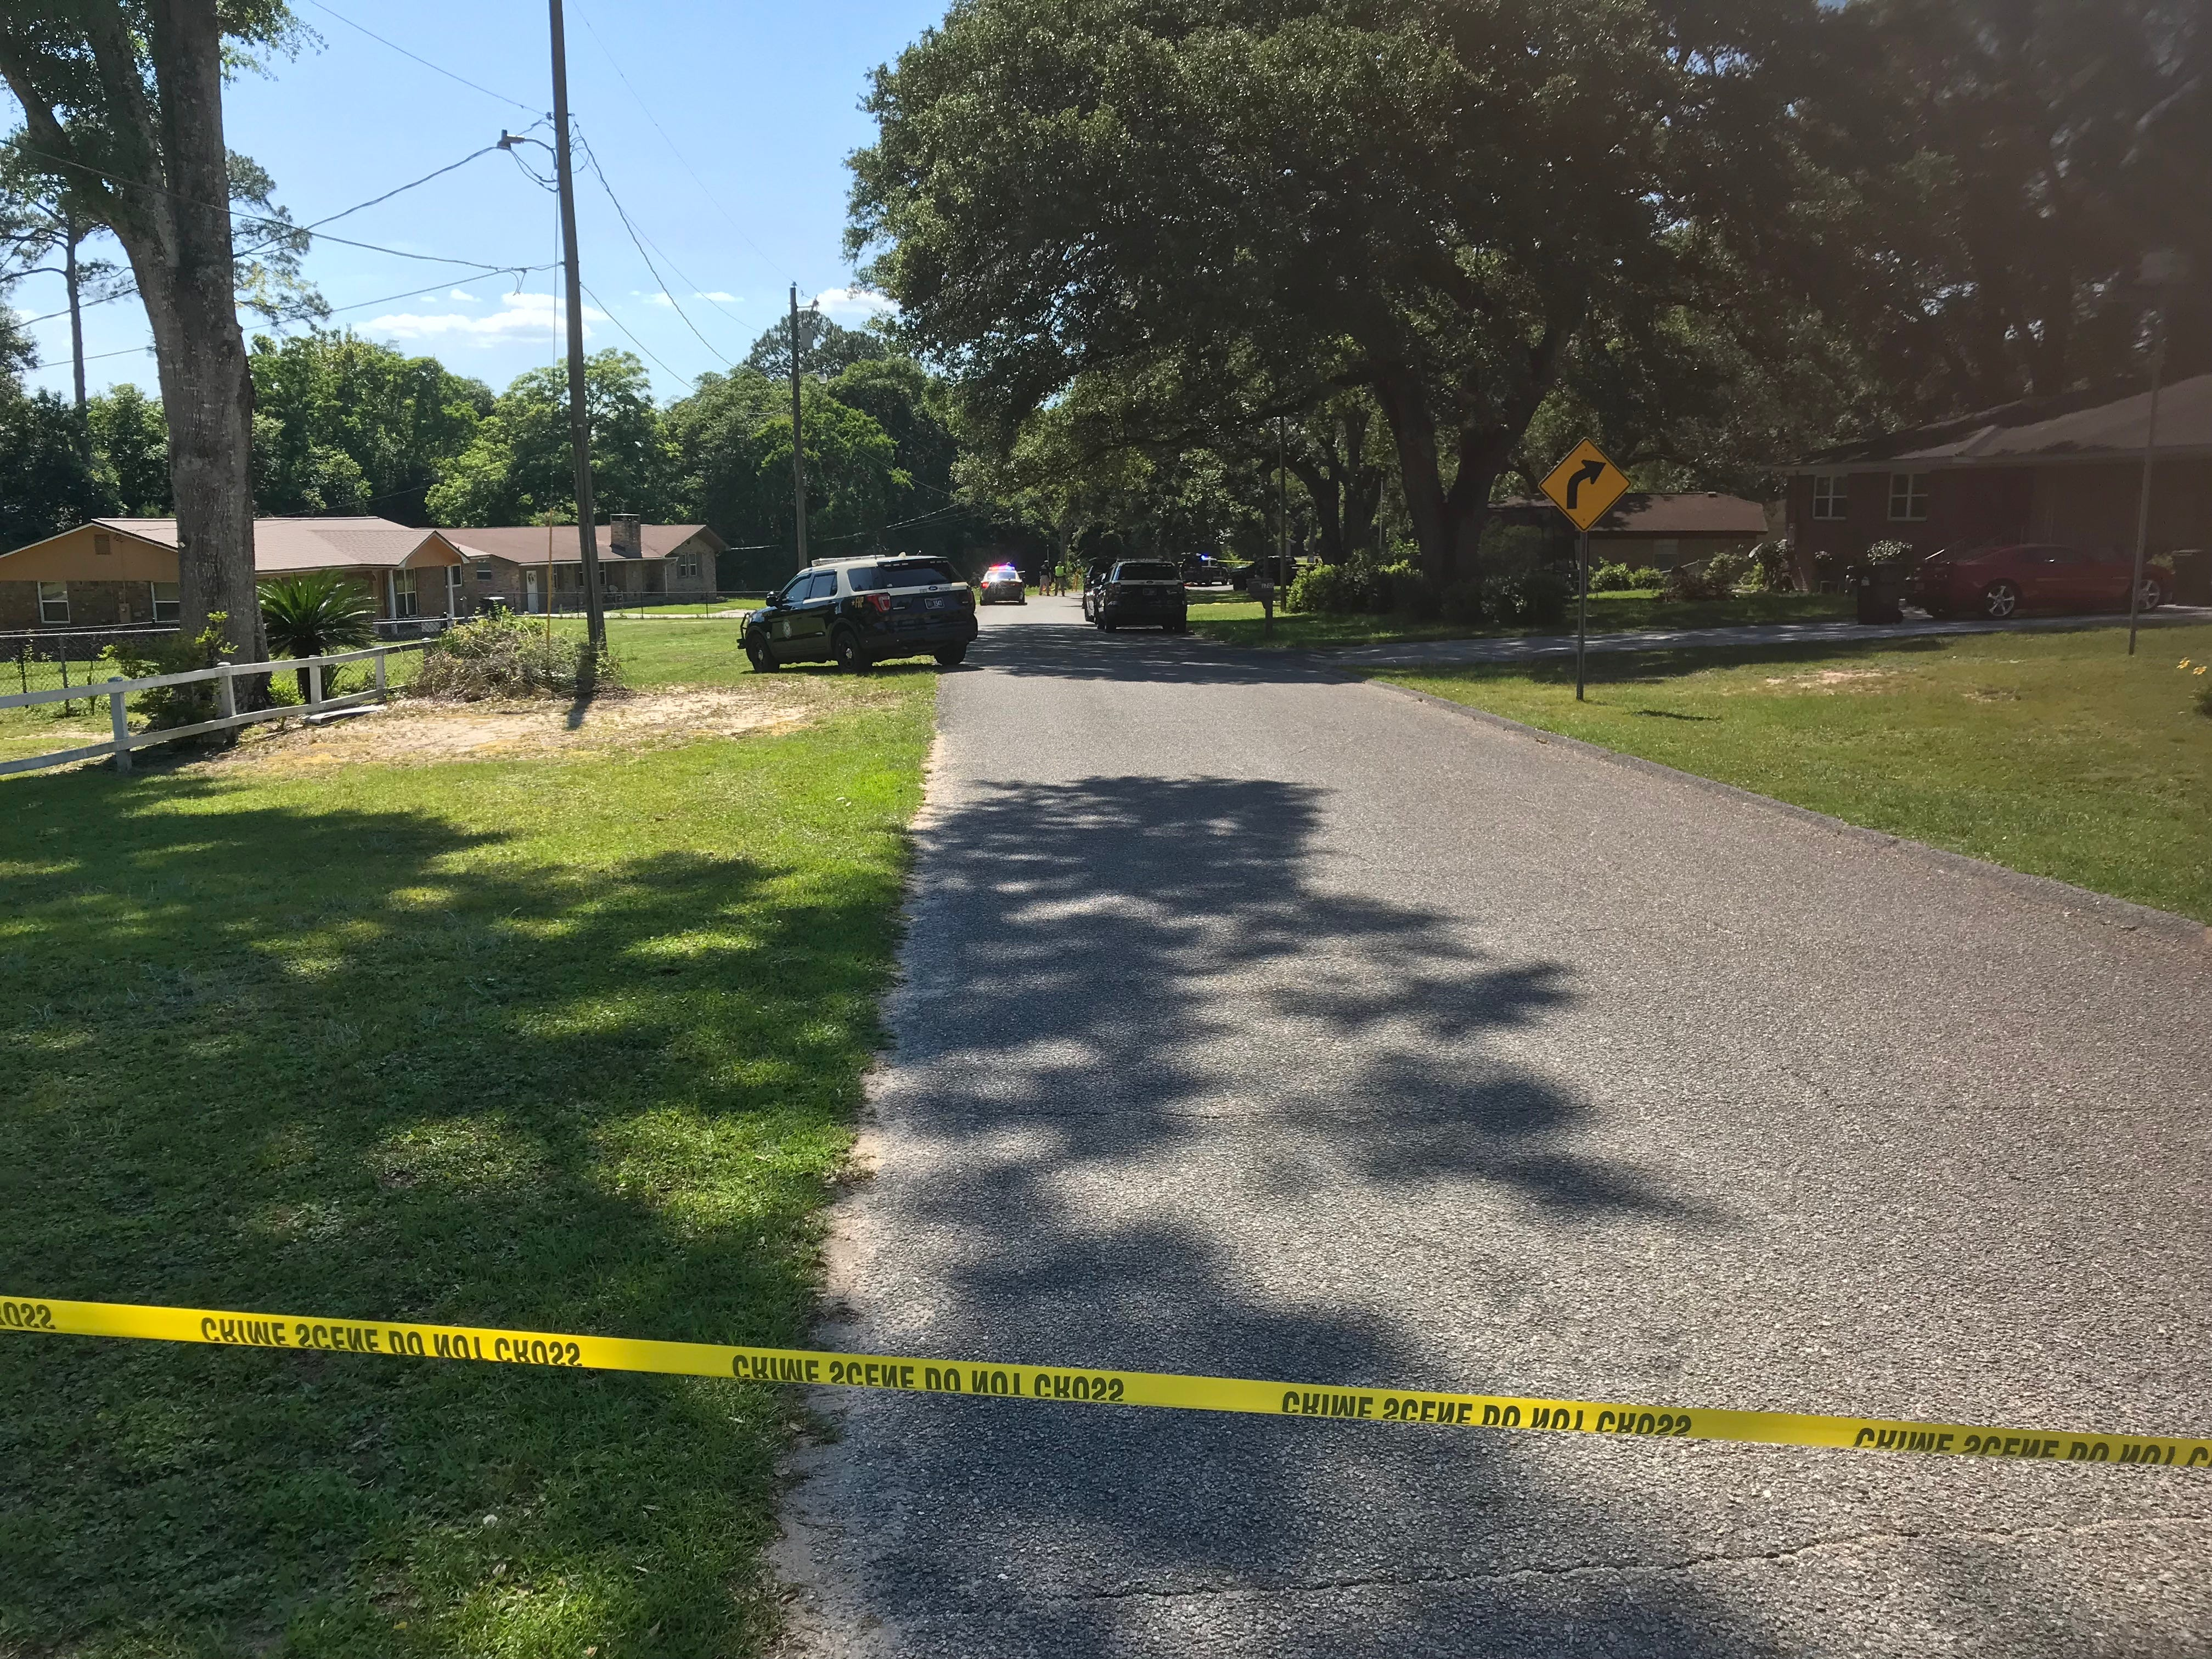 Law enforcement on Wednesday, May 15, 2019, responds to the scene where police say a young girl died after she as struck by a vehicle.